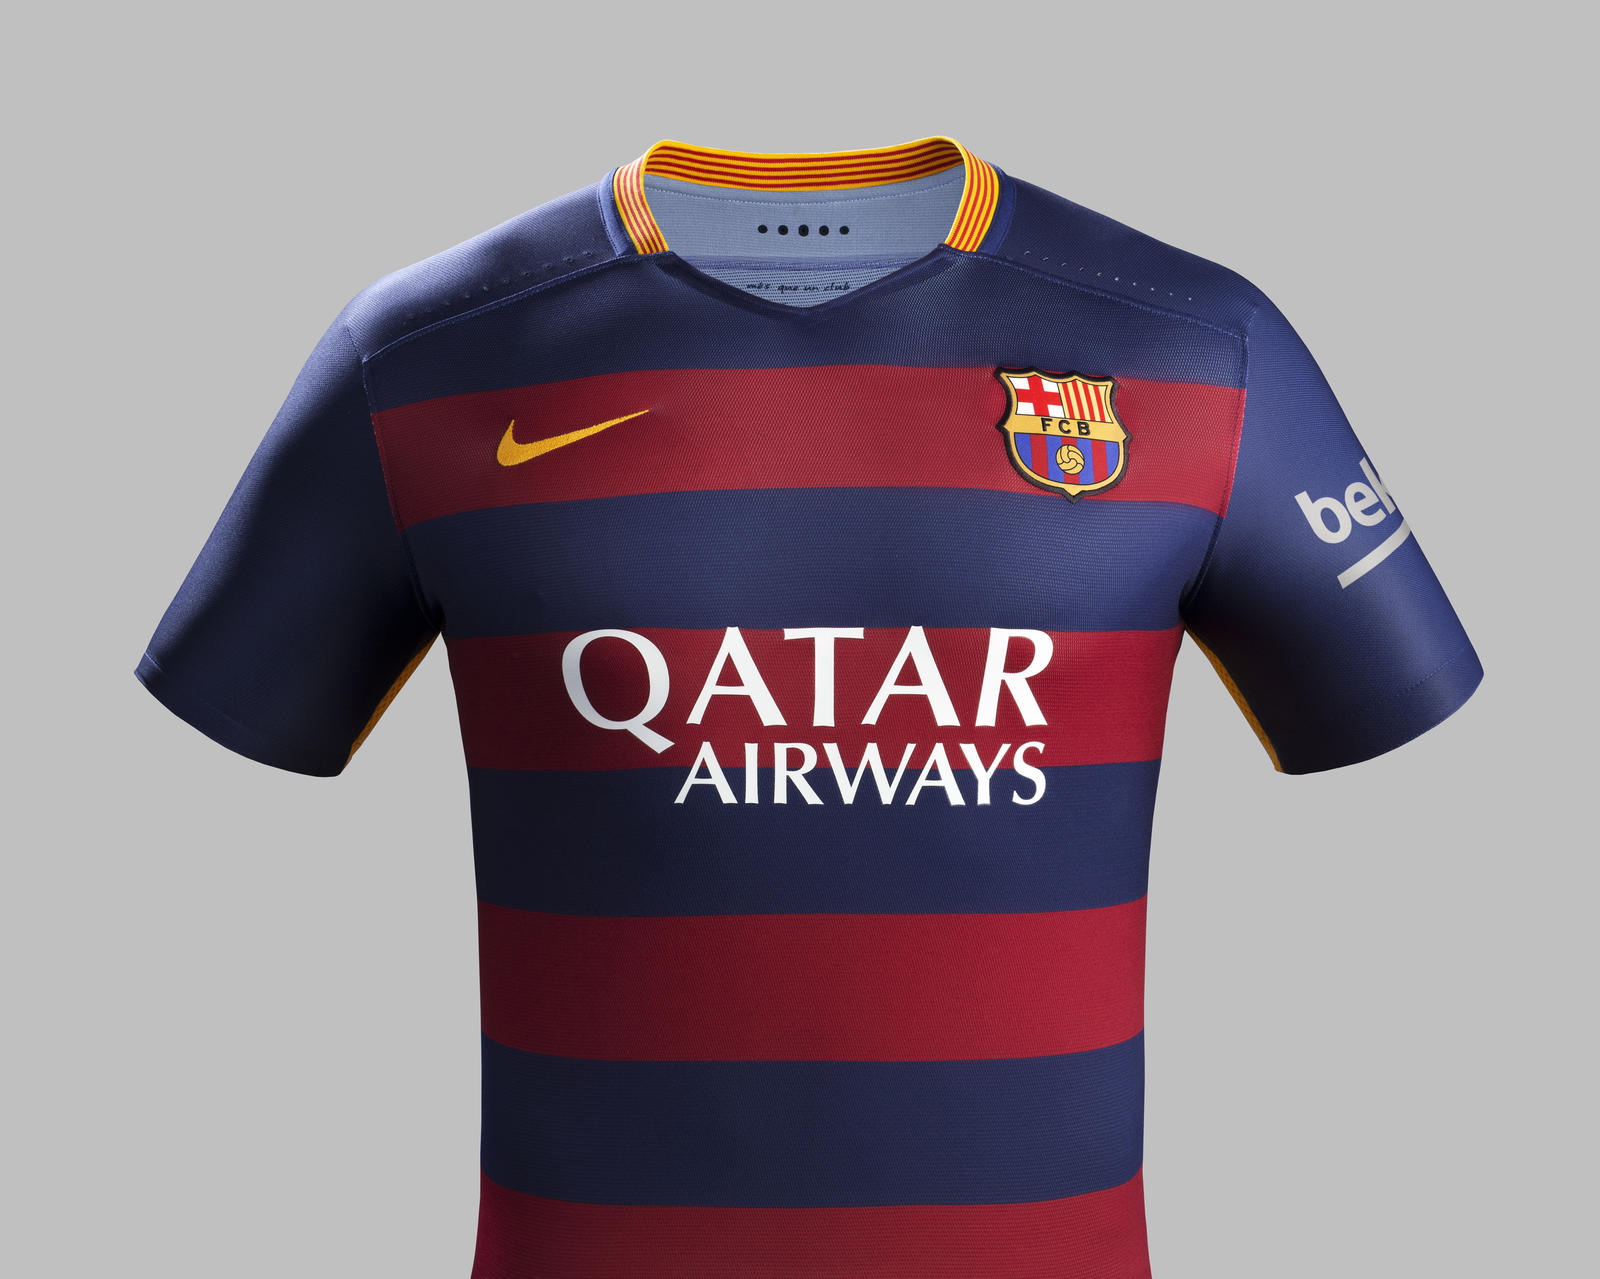 nouveaux maillots 2015 2016 fc barcelone nike. Black Bedroom Furniture Sets. Home Design Ideas